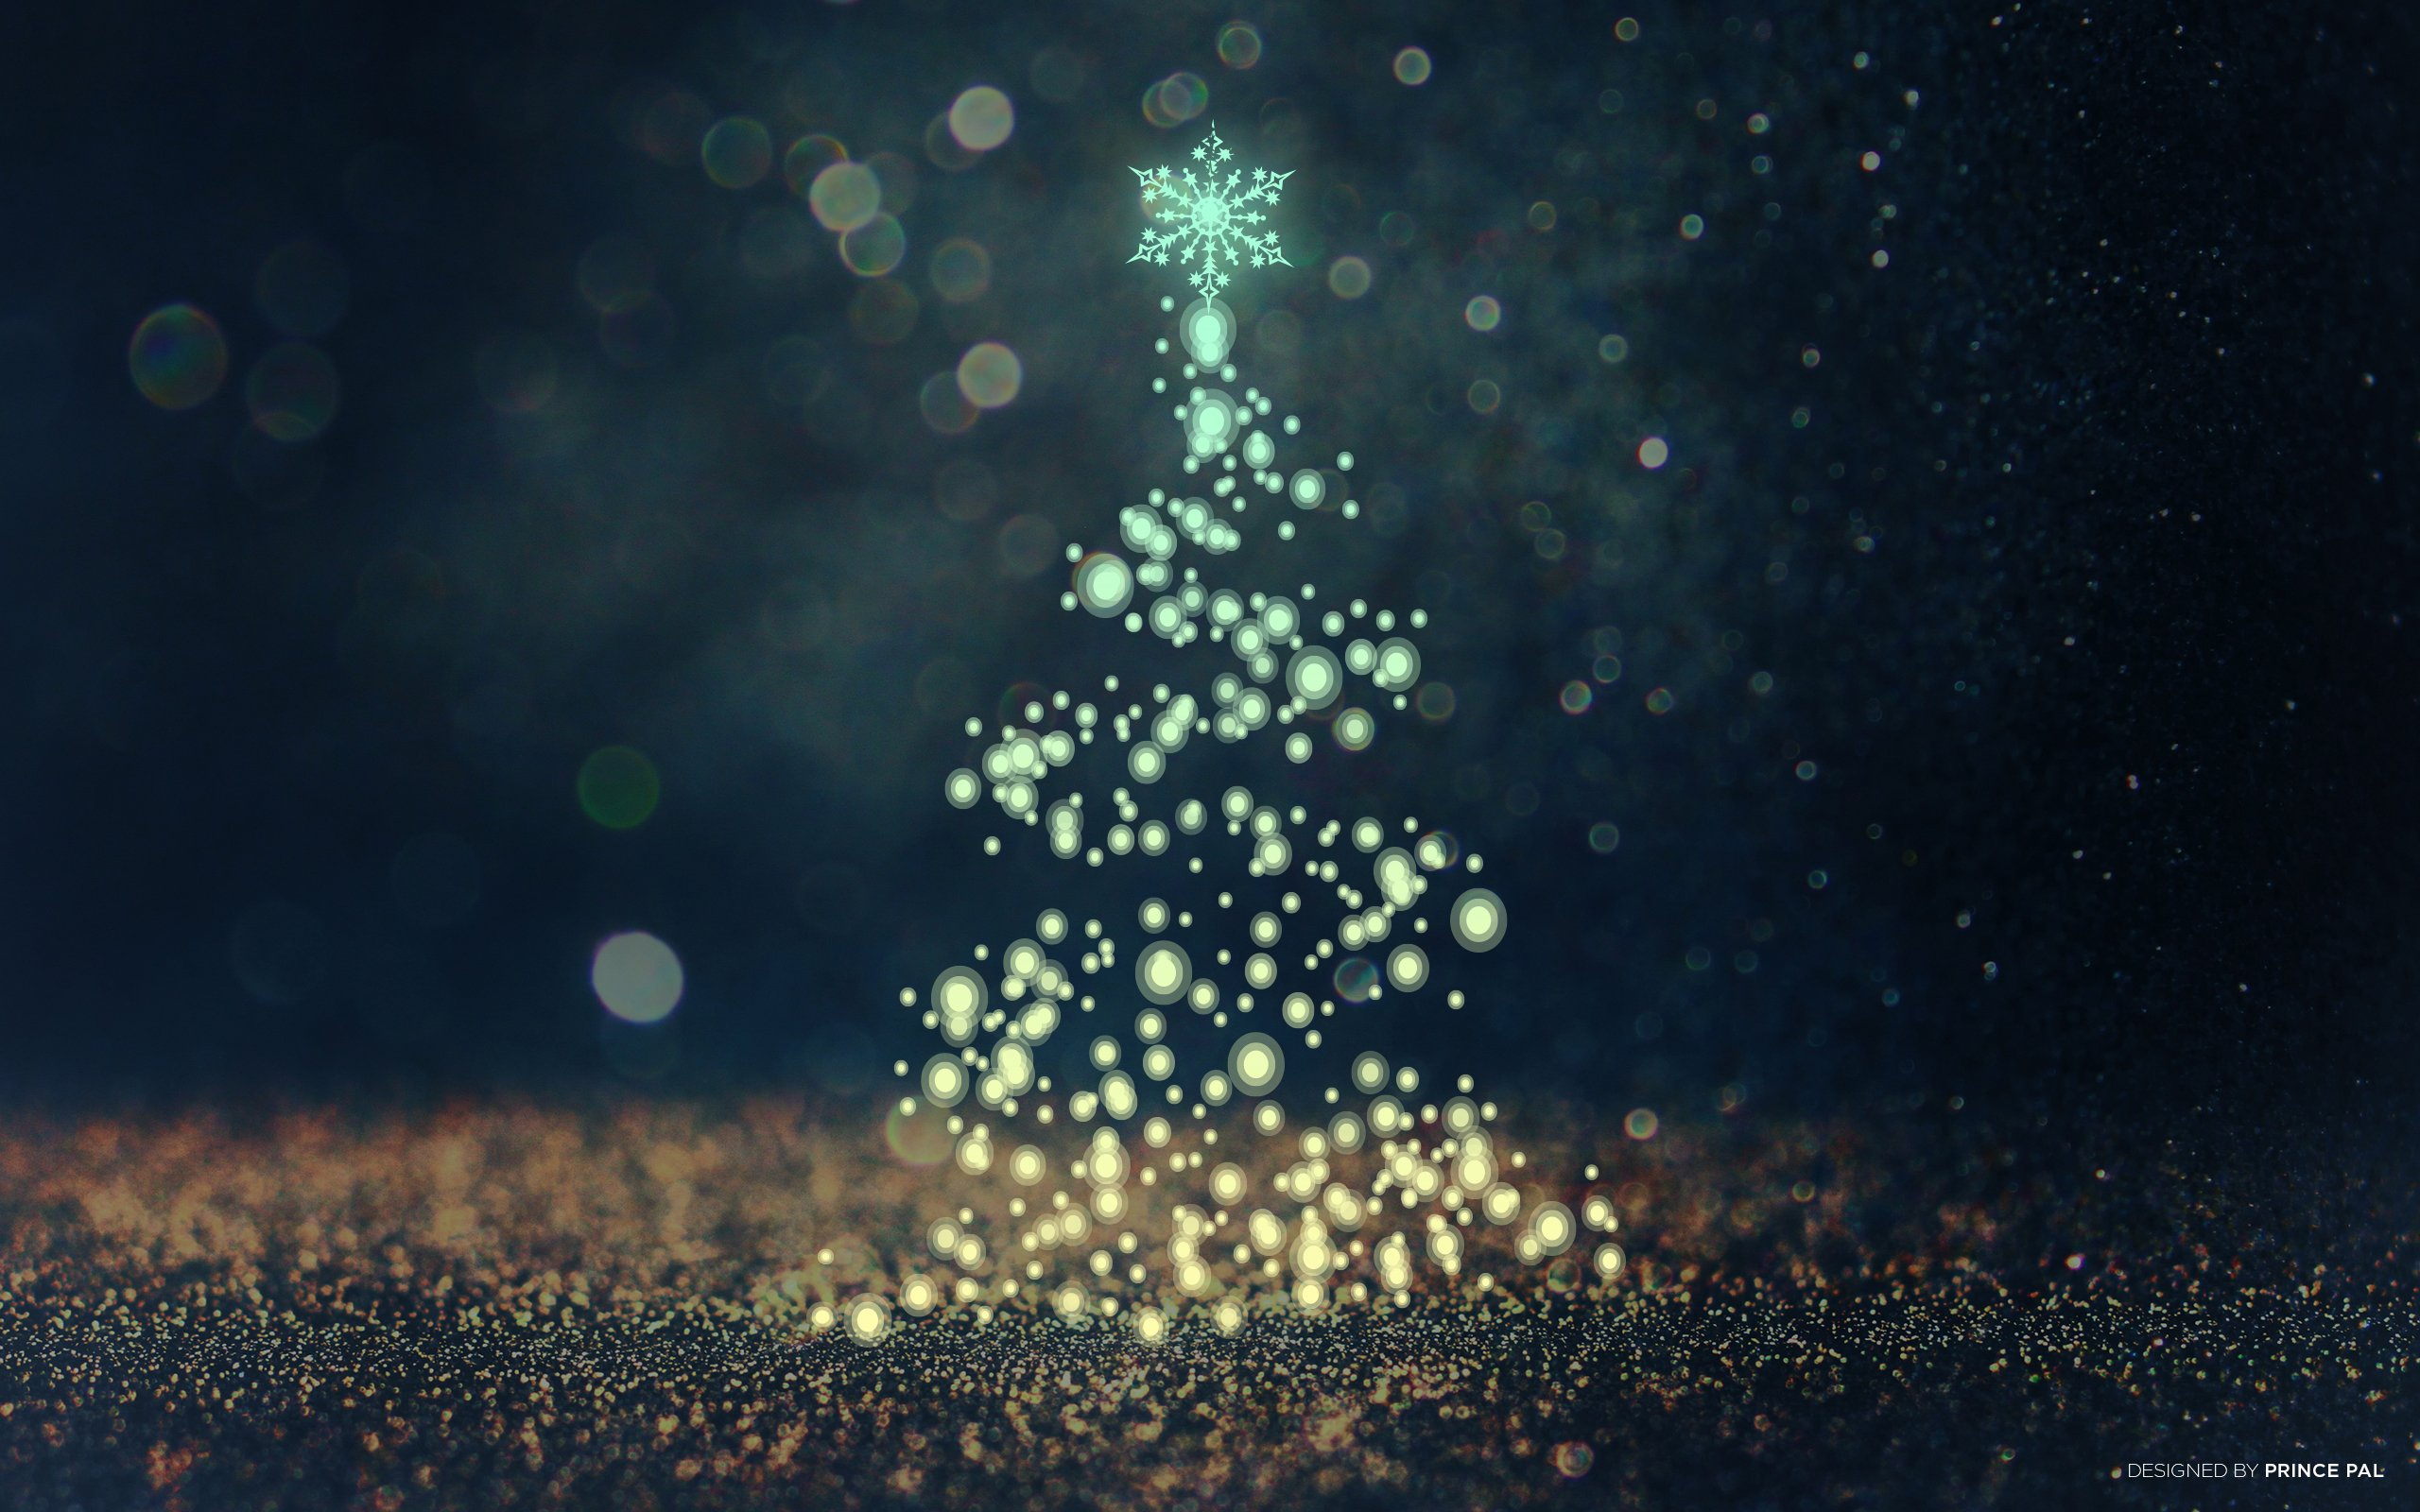 Stunning Brand New Christmas 2014 Wallpapers 2560x1600